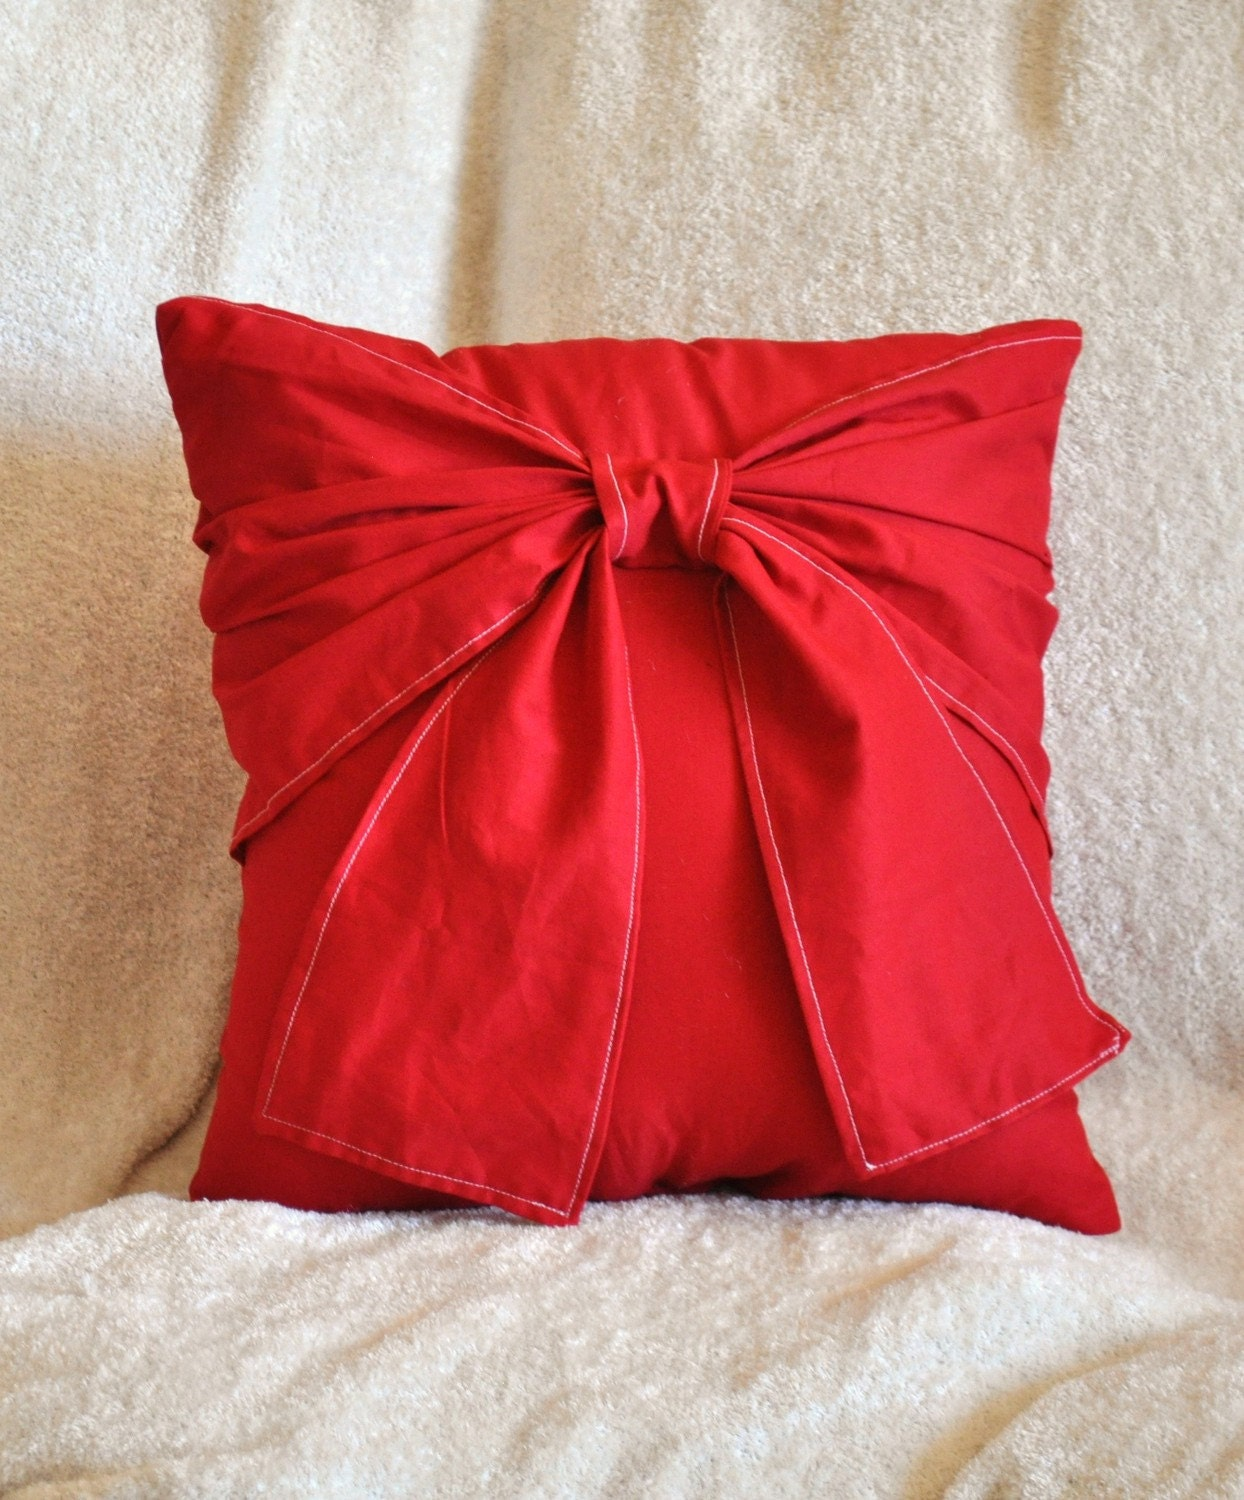 Big Red Decorative Pillows : Red Decorative Pillow Big Bow Pillow 14x14 Choose Your Color